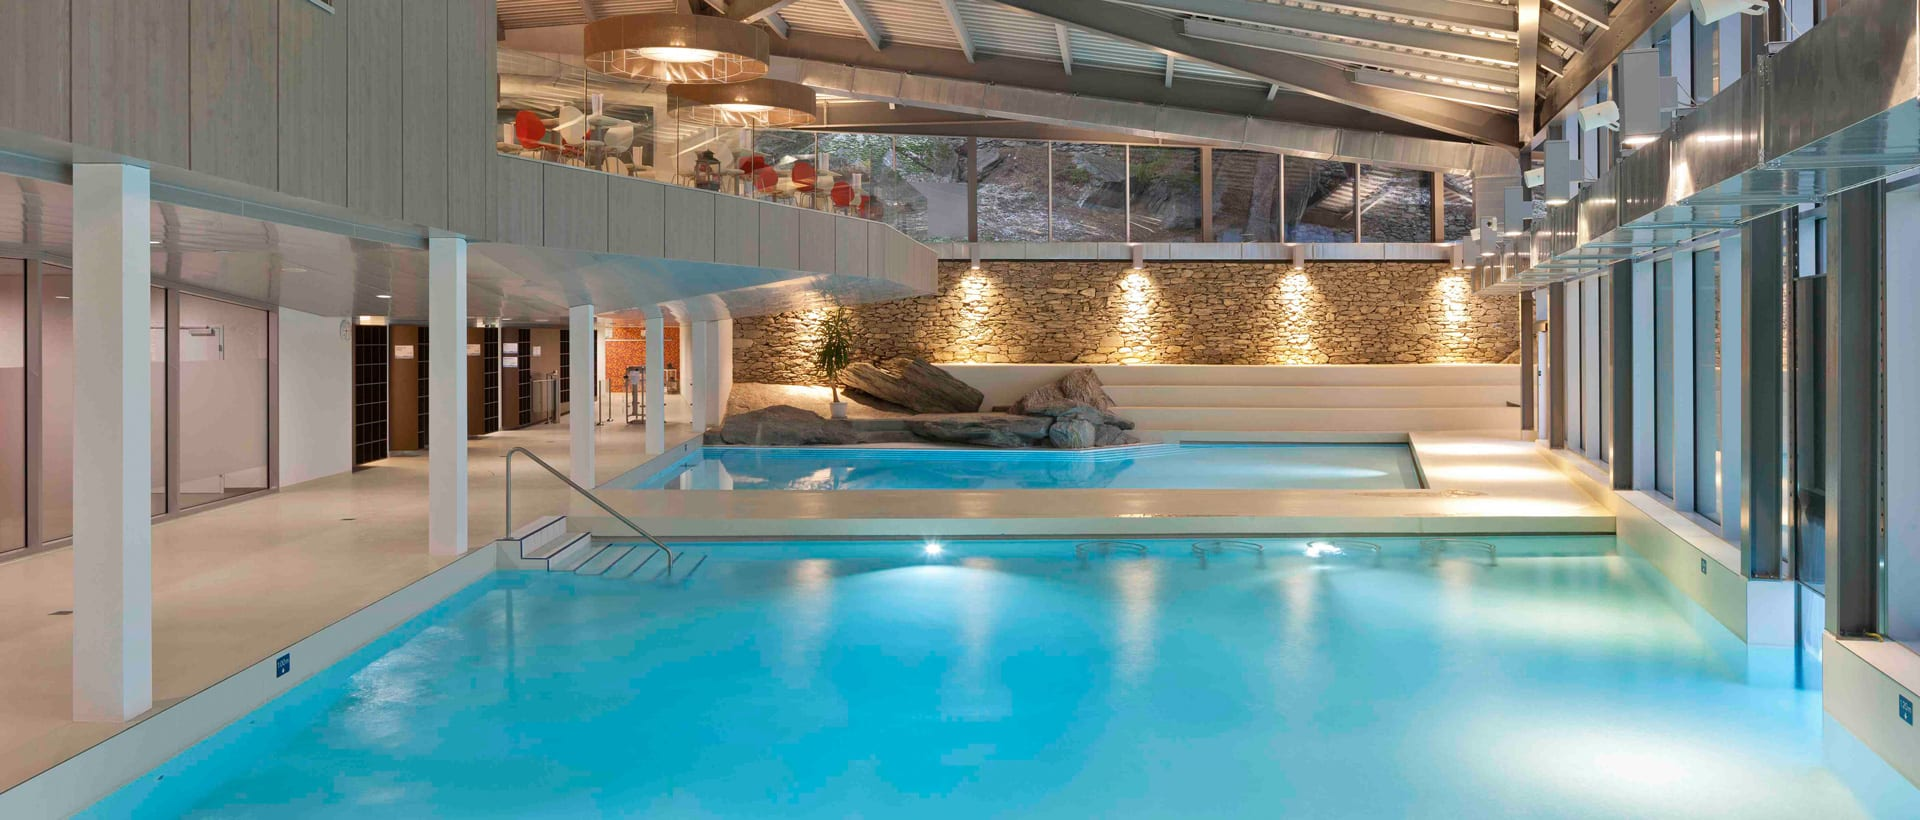 Thermal indoor pools